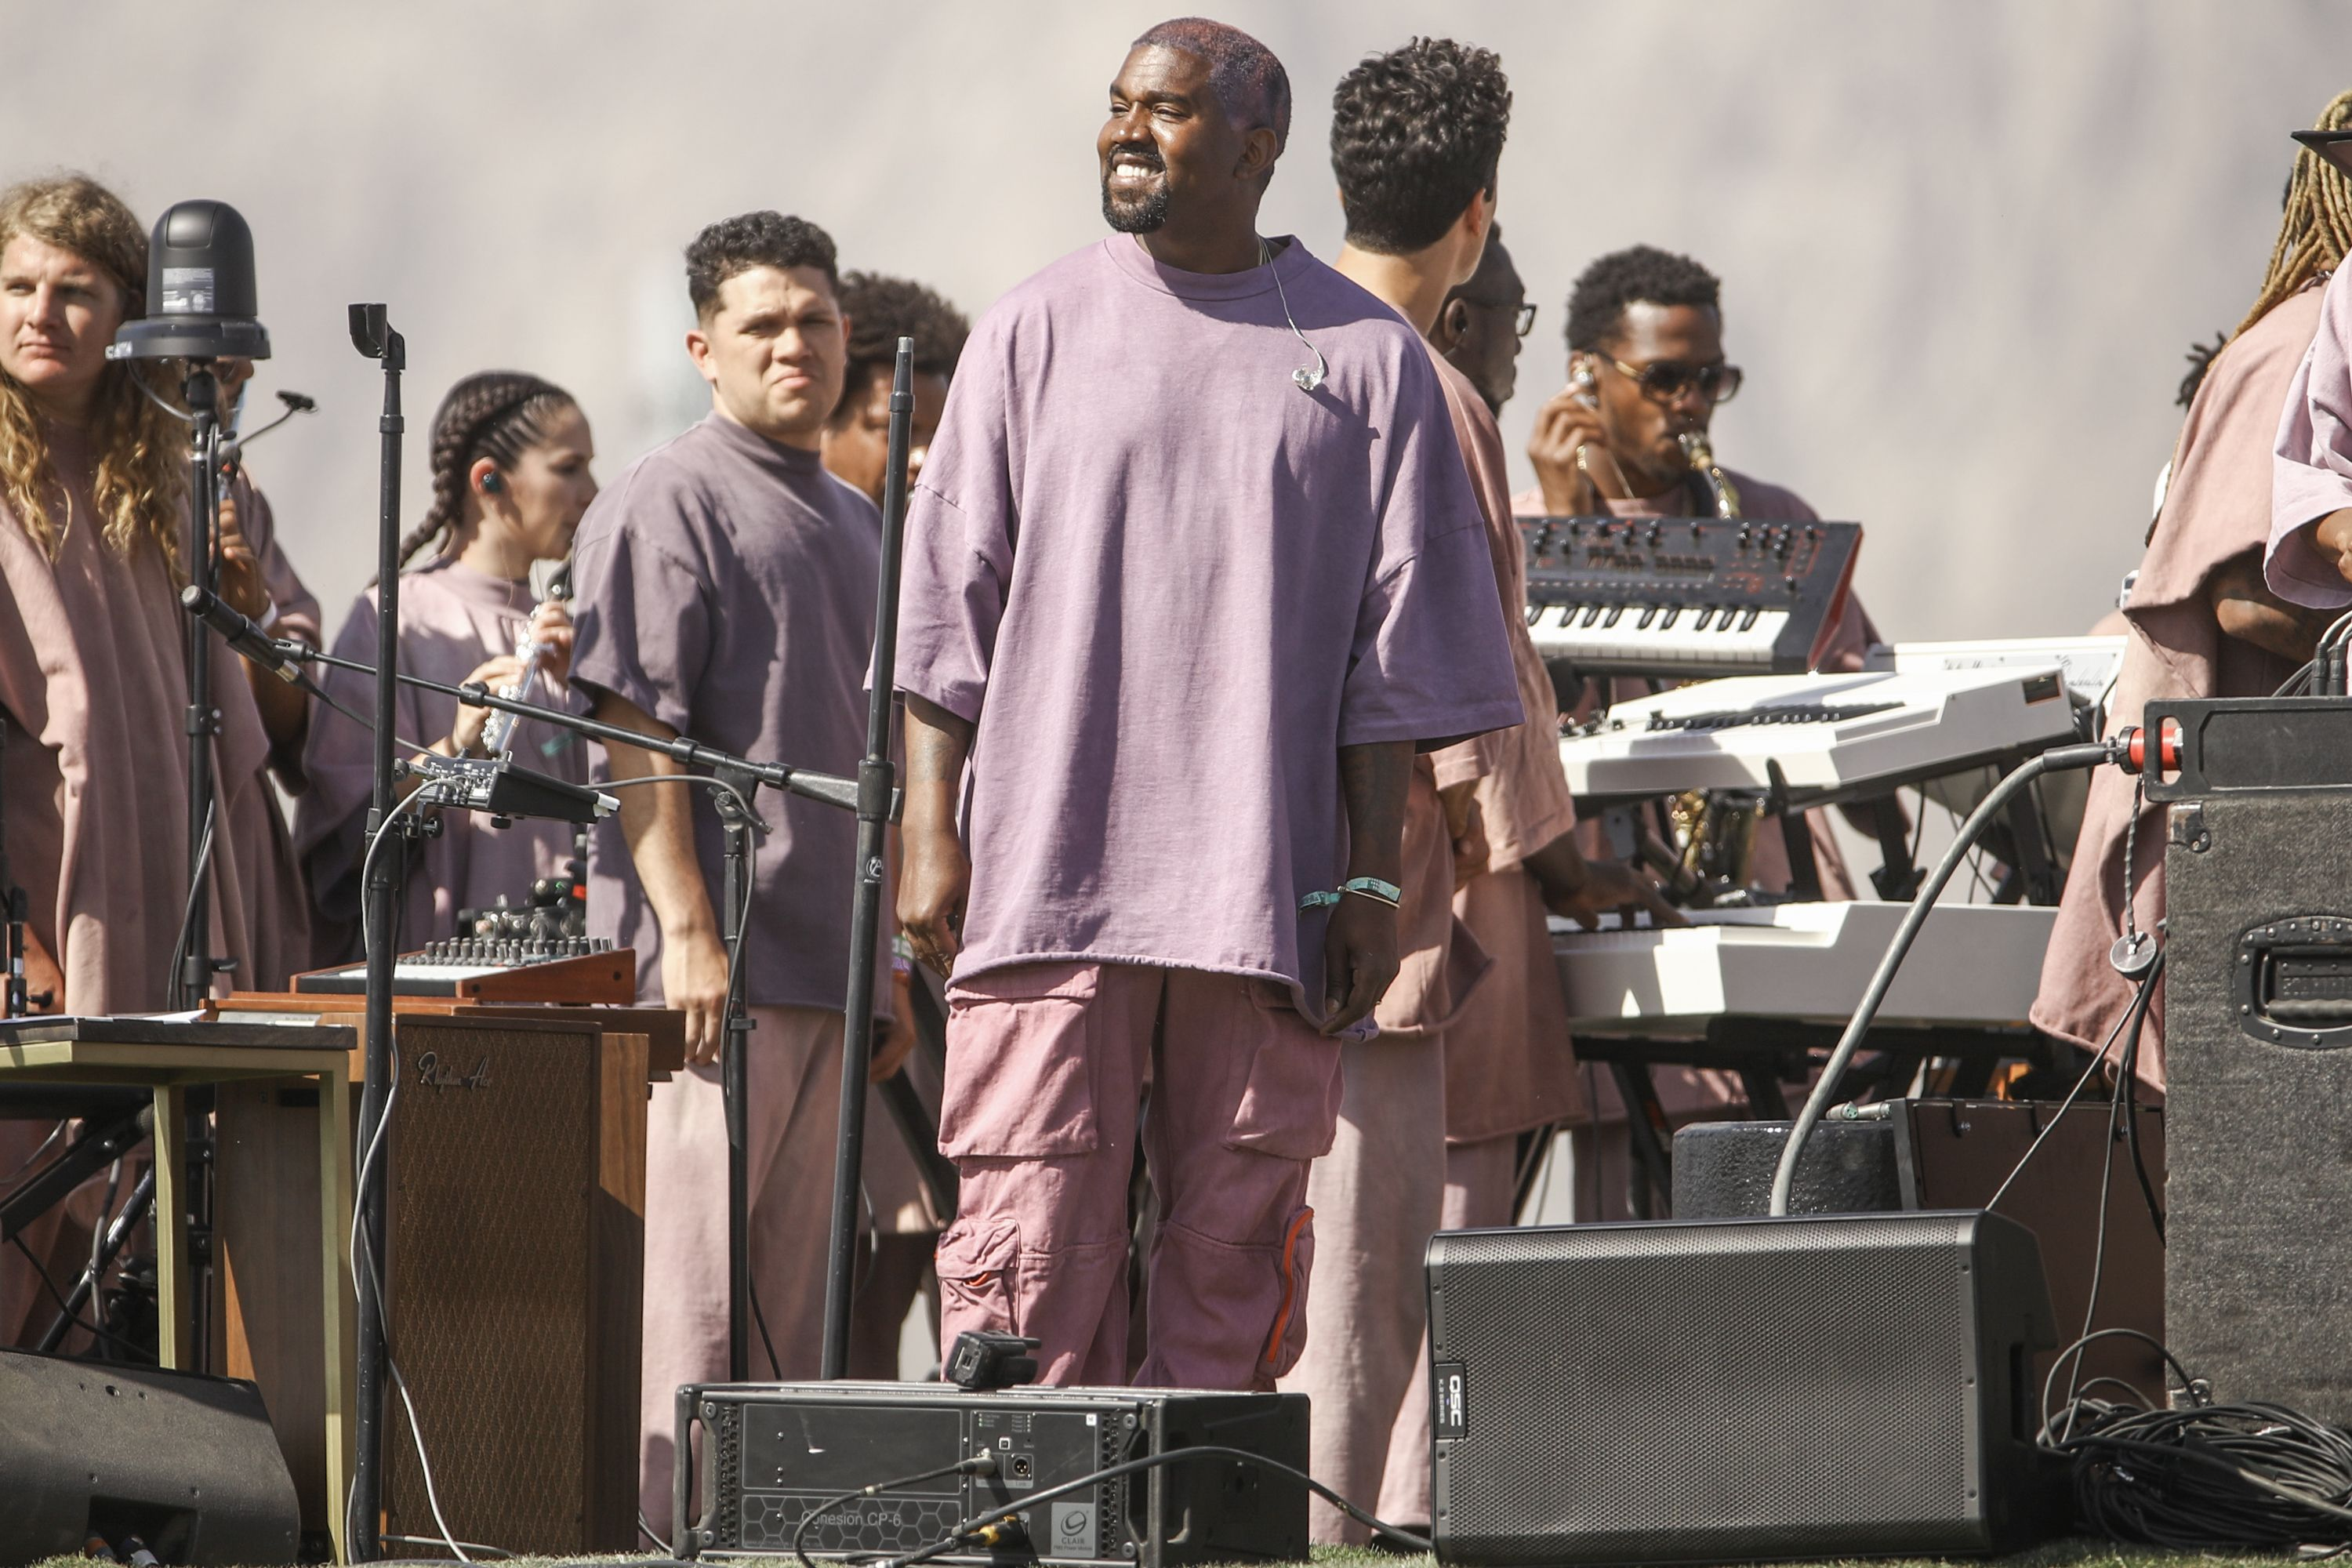 Kanye West performs Sunday Service during the 2019 Coachella Valley Music And Arts Festival on April 21, 2019 in Indio, California. | Source: Getty Images